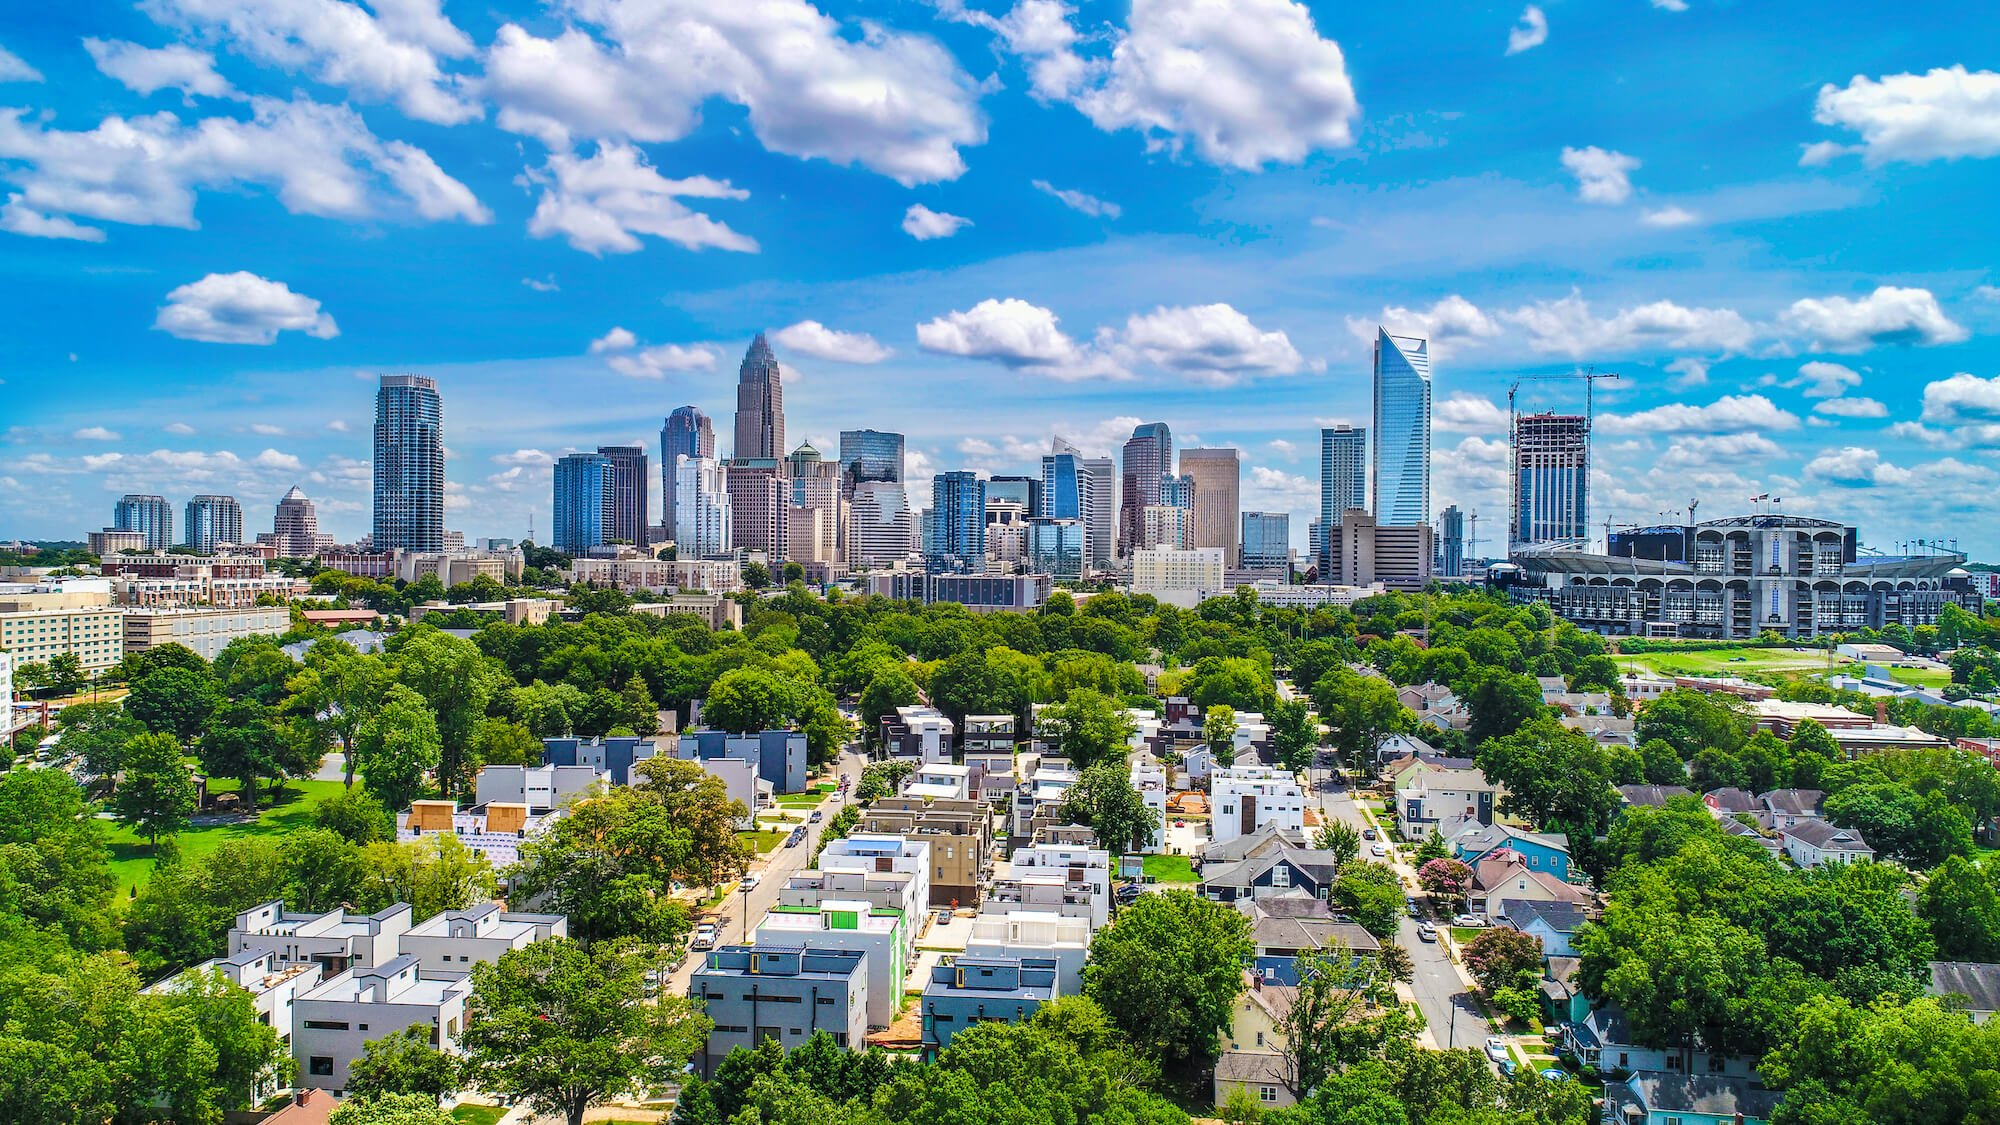 HappyNest Continues Expansion in Southern US, Now in Charlotte, NC